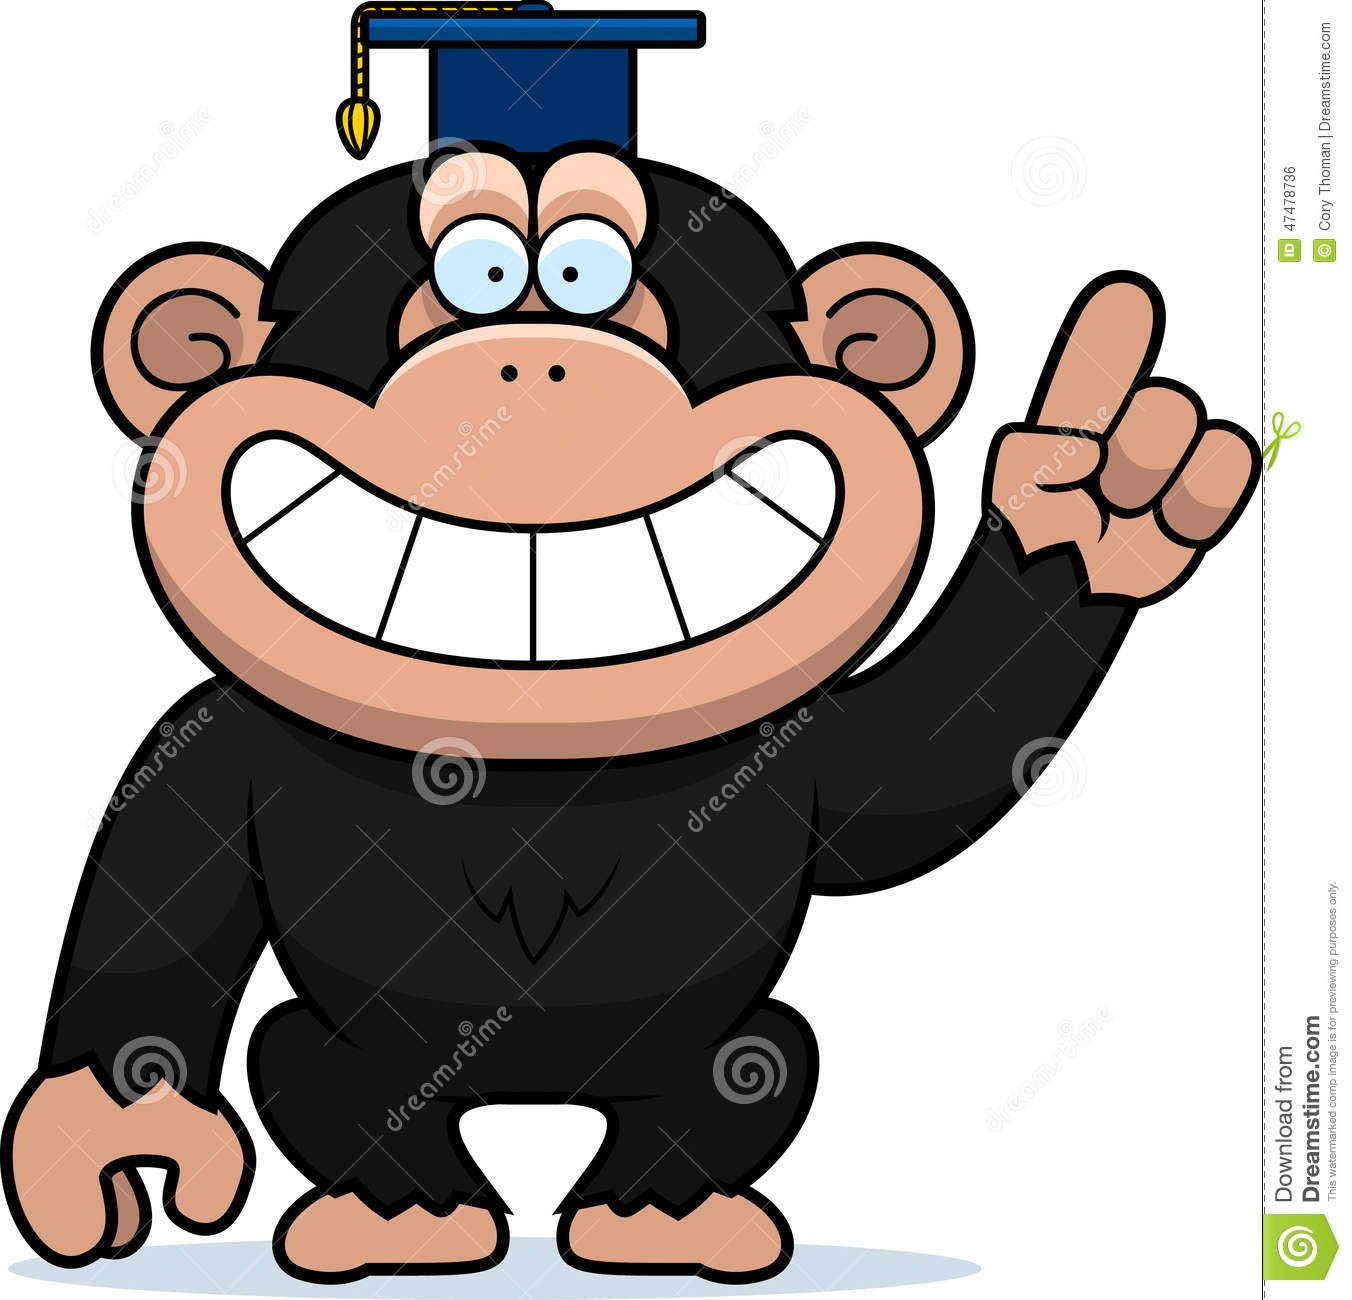 Cartoon Chimpanzee Professor Stock Vector - Image: 47478736